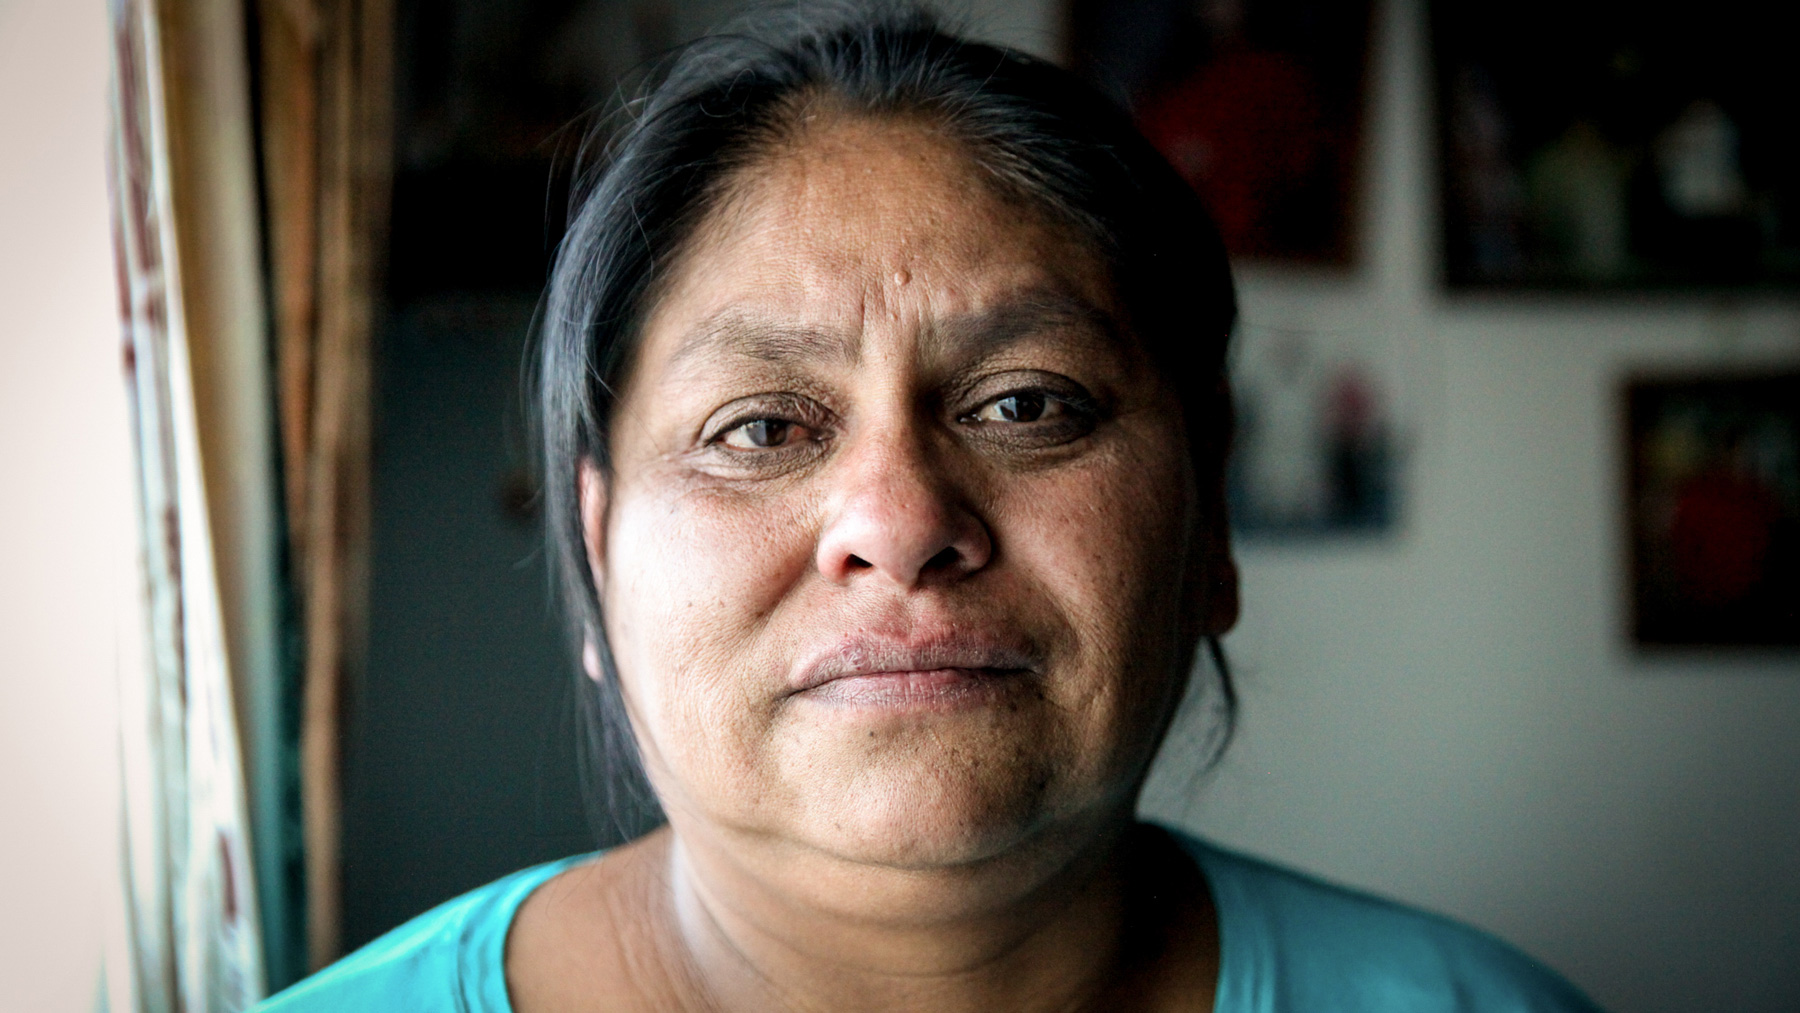 Yolanda Badback is one of the few White Mesa, Utah, residents from the Ute Mountain Ute tribe who is organizing and protesting against the White Mesa Mill. (Maria Esquinca/News21)